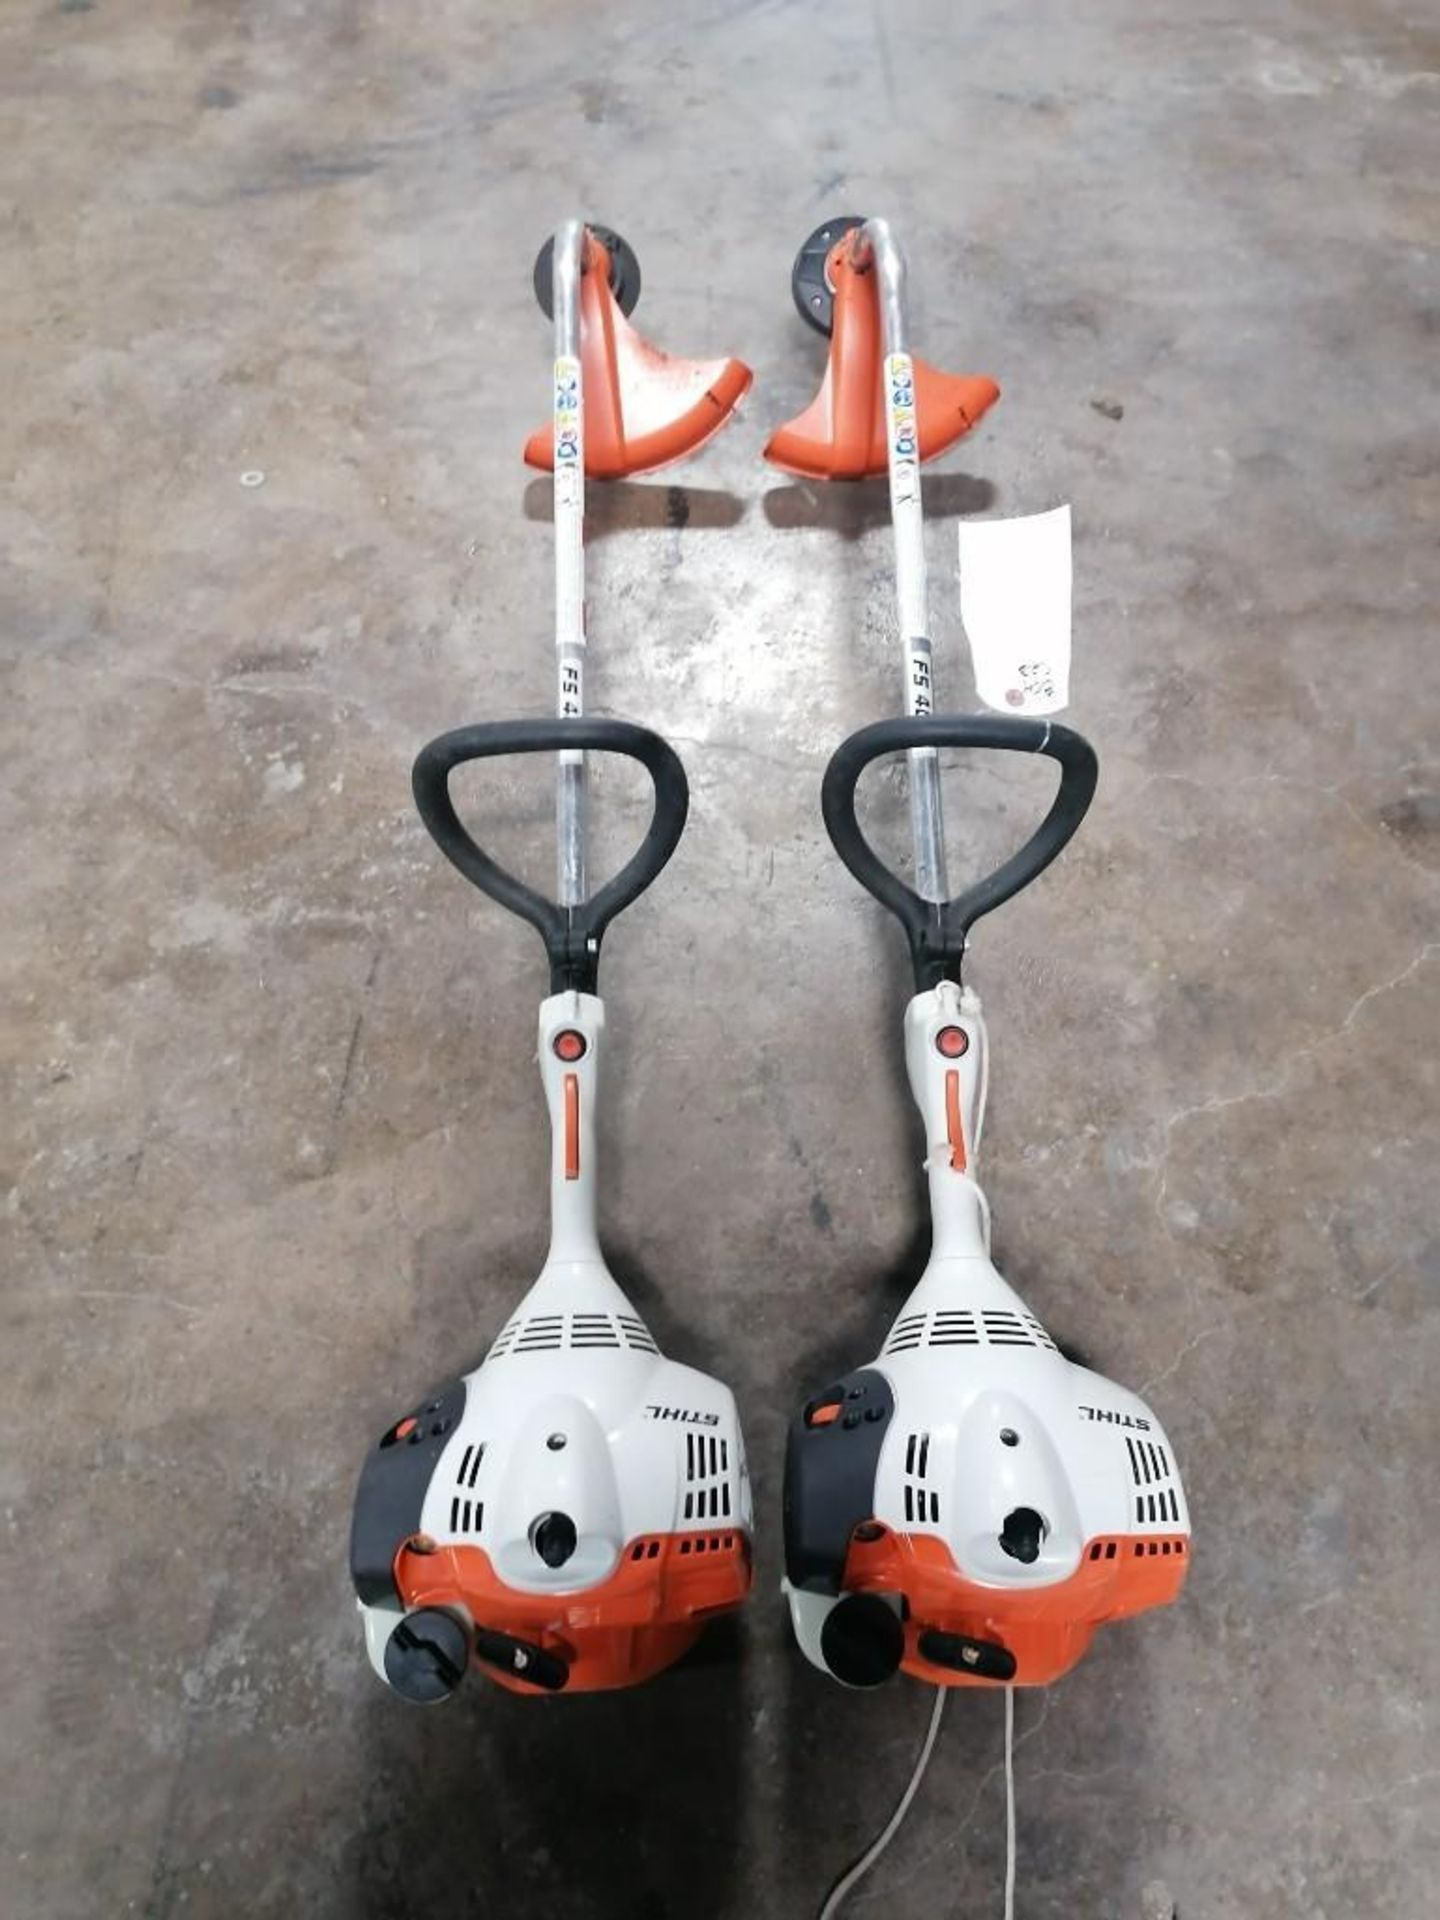 Lot 40 - (2) Stihl FS40C String Trimmer. Located at 301 E Henry Street, Mt. Pleasant, IA 52641.